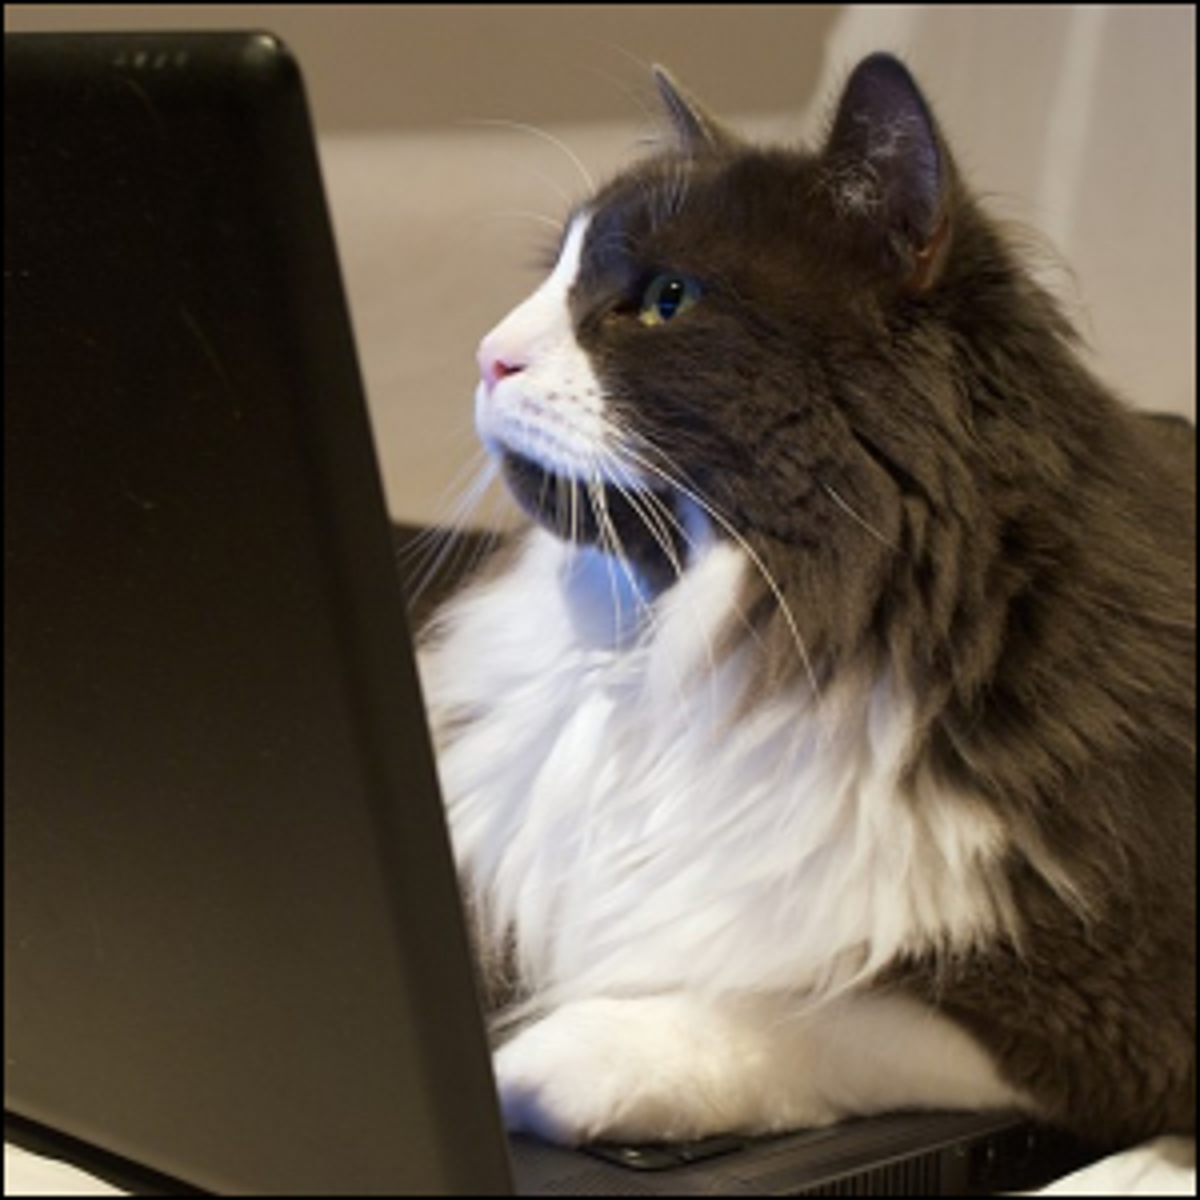 A gray and white cat laying on the keyboard while looking at the laptop screen.